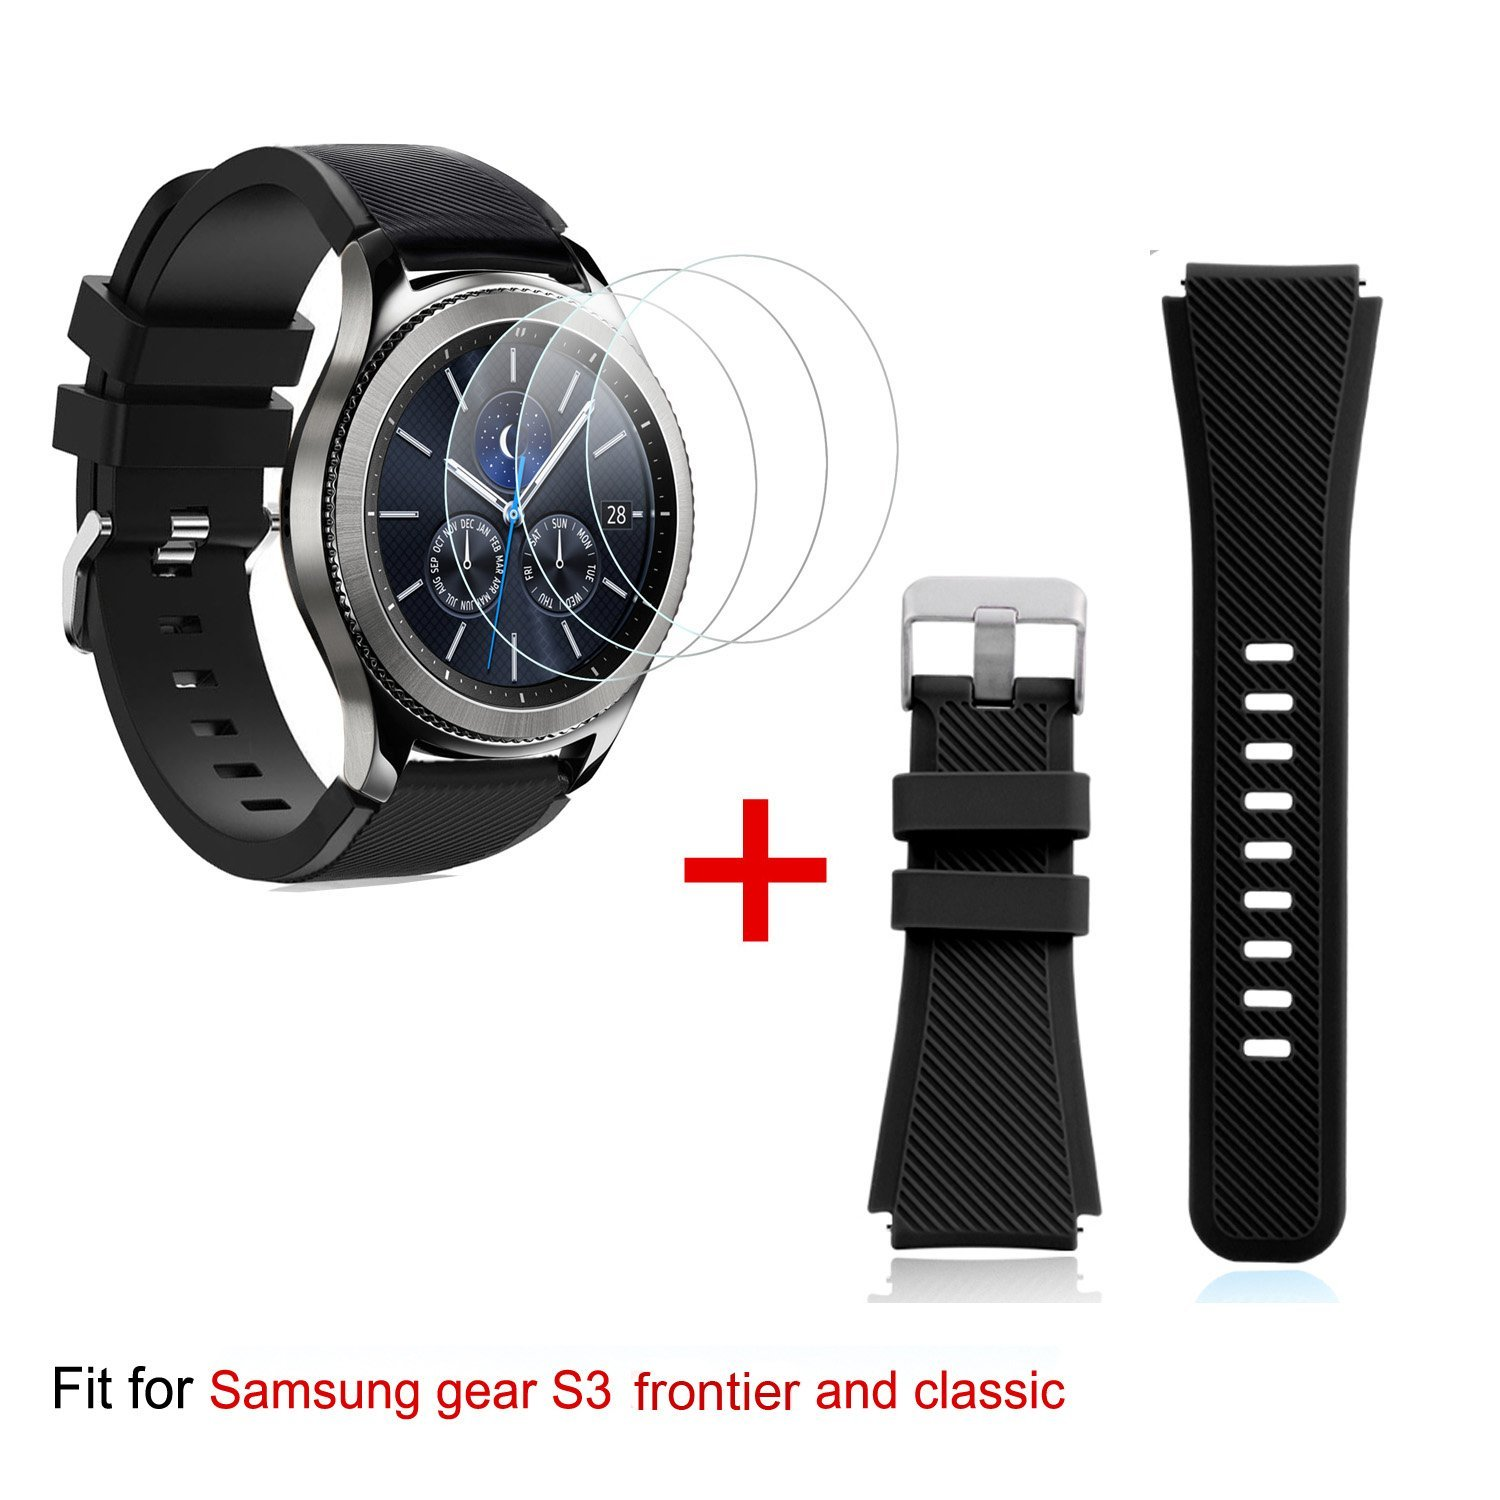 Band Replacement and Tempered Glass Screen Protectors for Samsung Gear S3[3-Pack], for Samsung Gear S3 Frontier/Classic Smartwatch (Black)